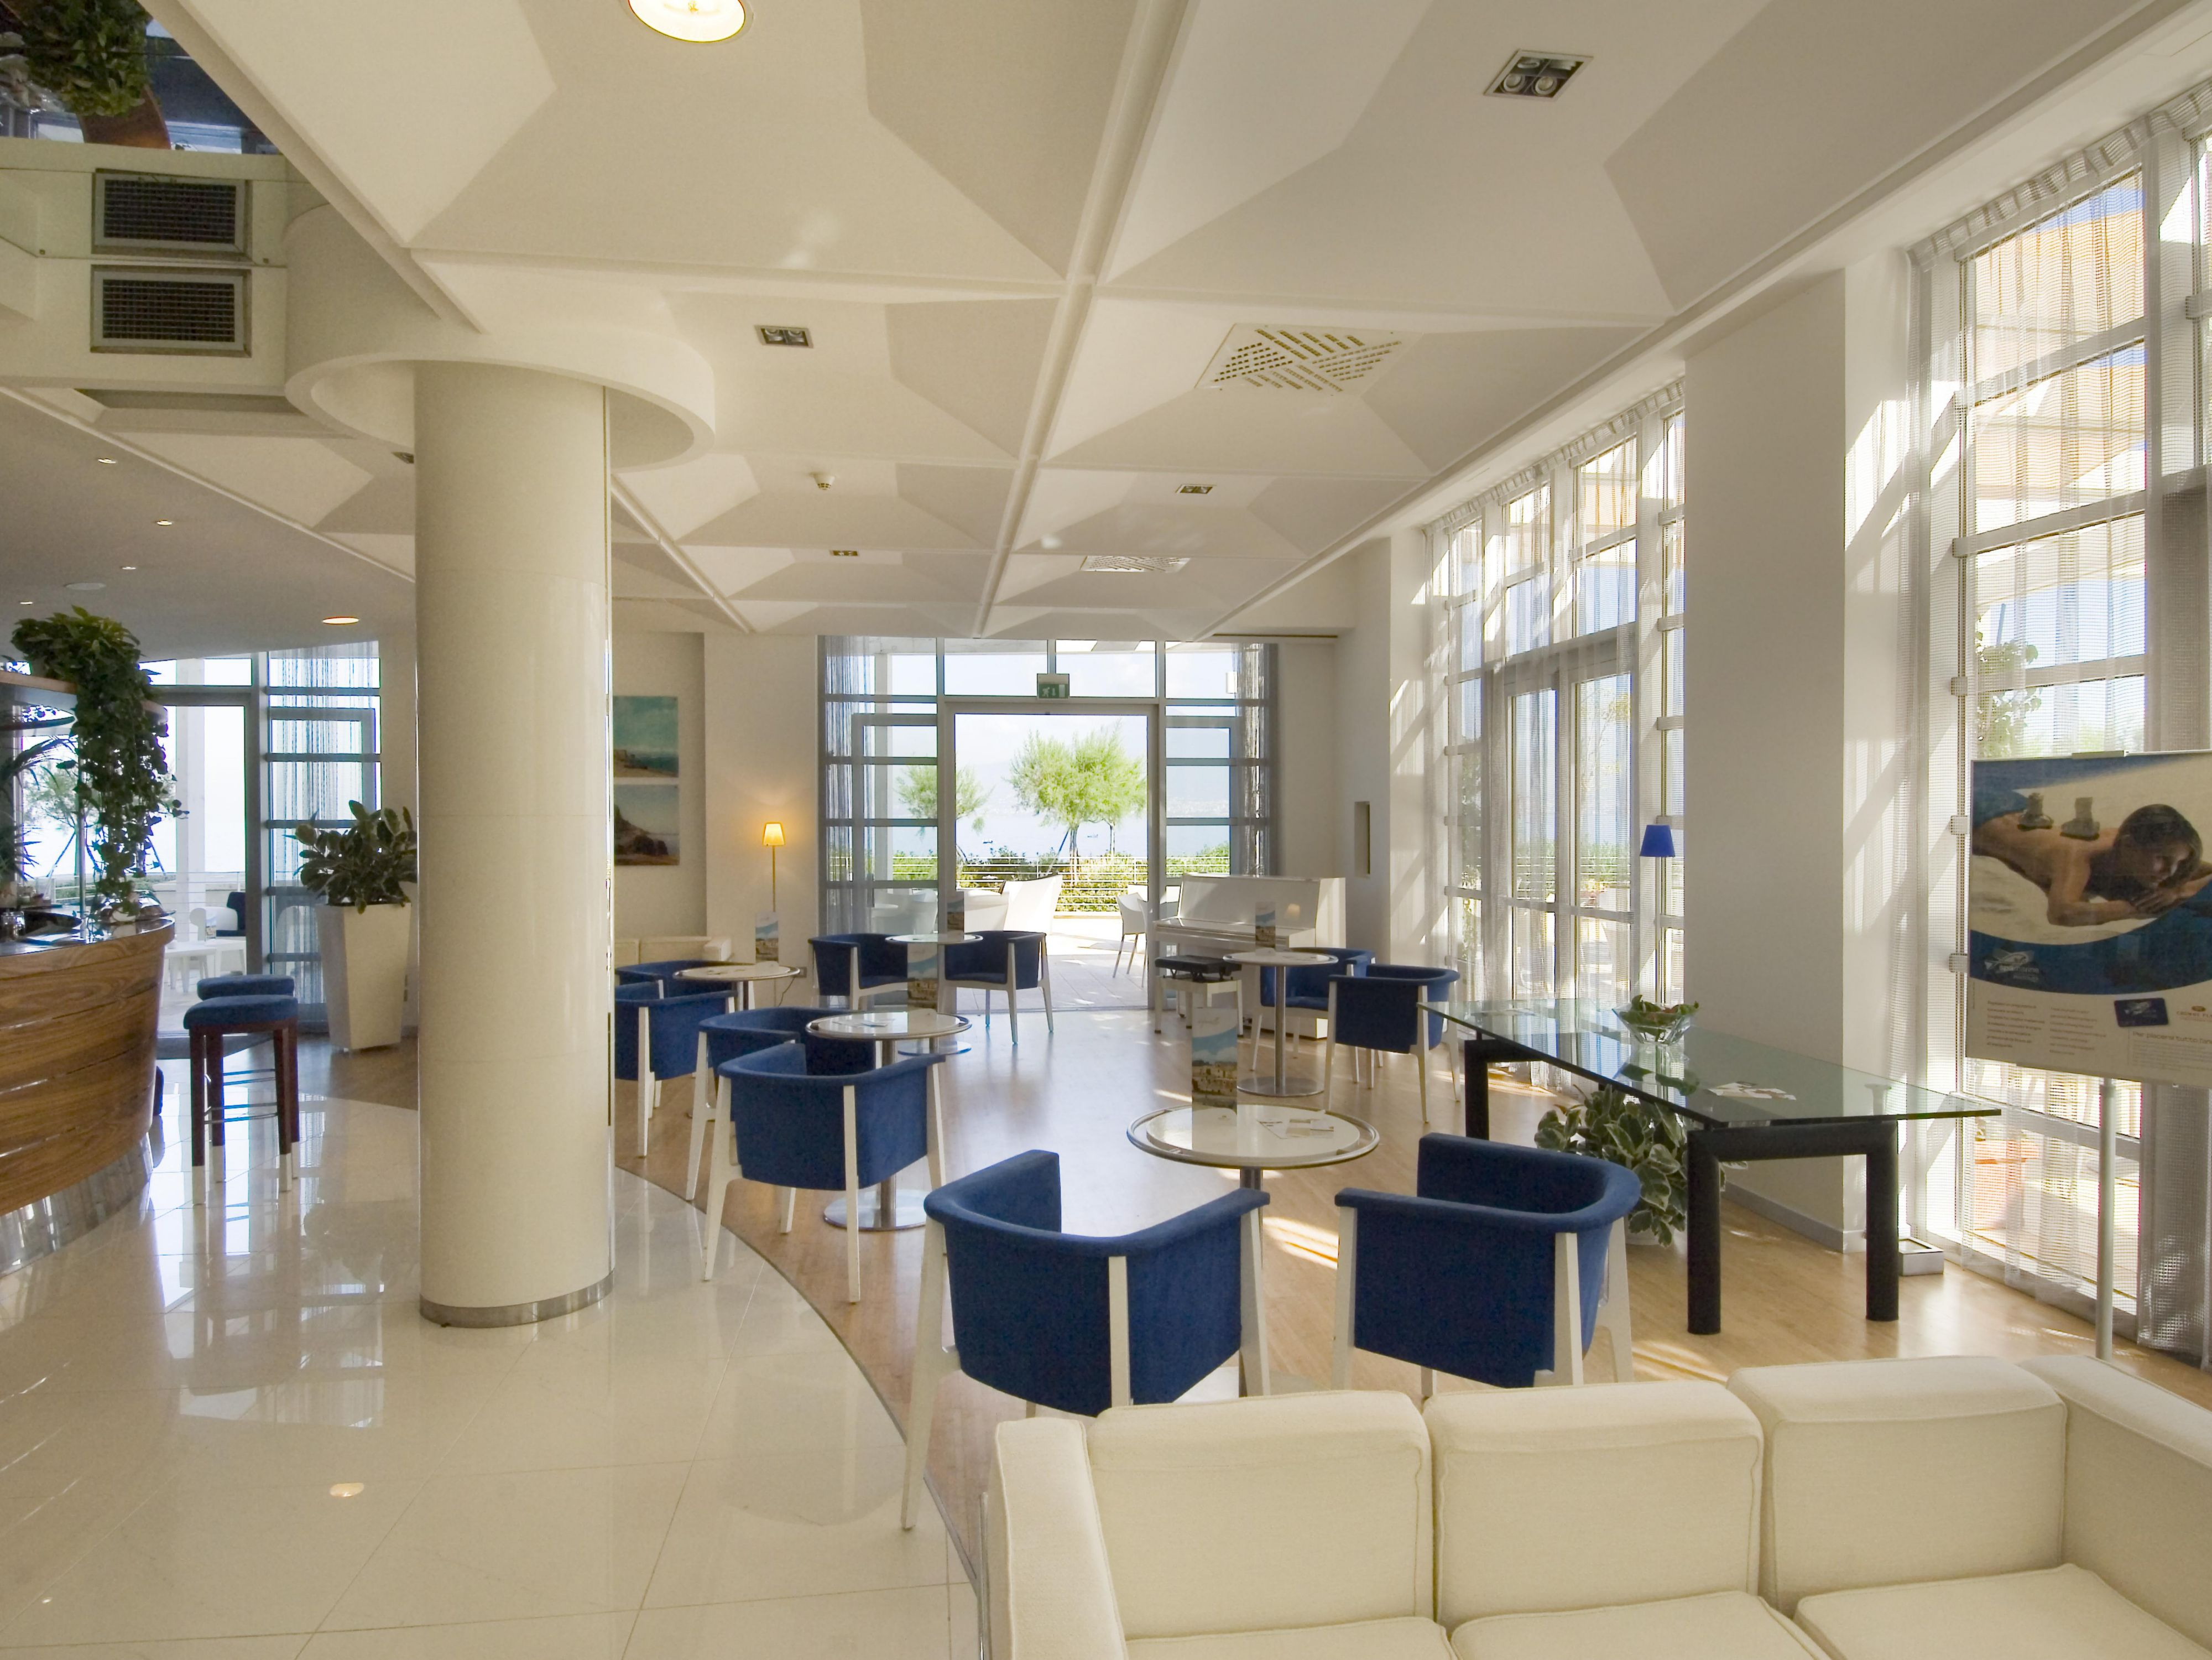 Lobby area with comfortable sittings and american bar